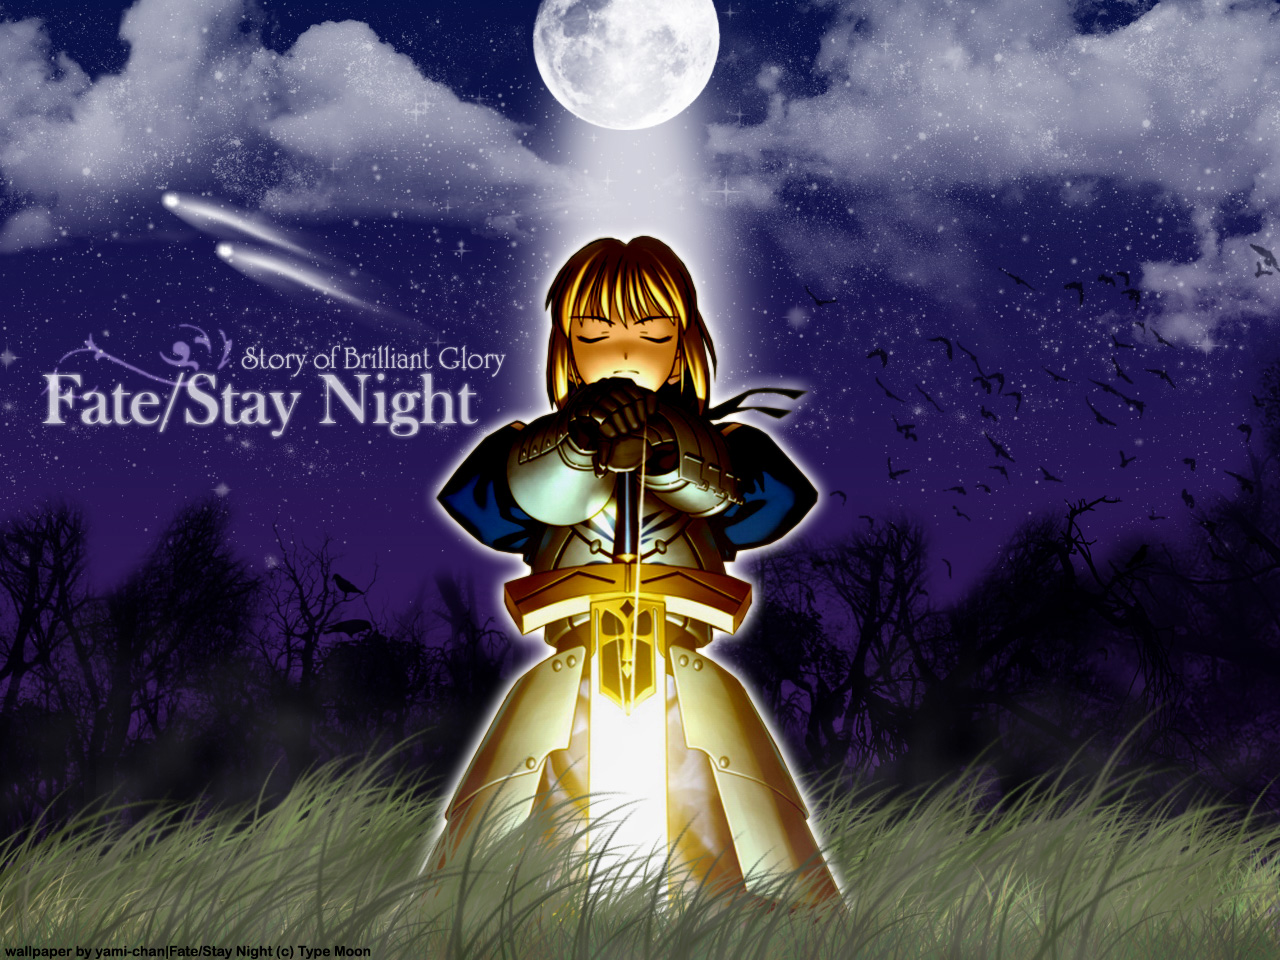 [AnimePaper]wallpapers_Fate-Stay-Night_yami-chan_-edit891